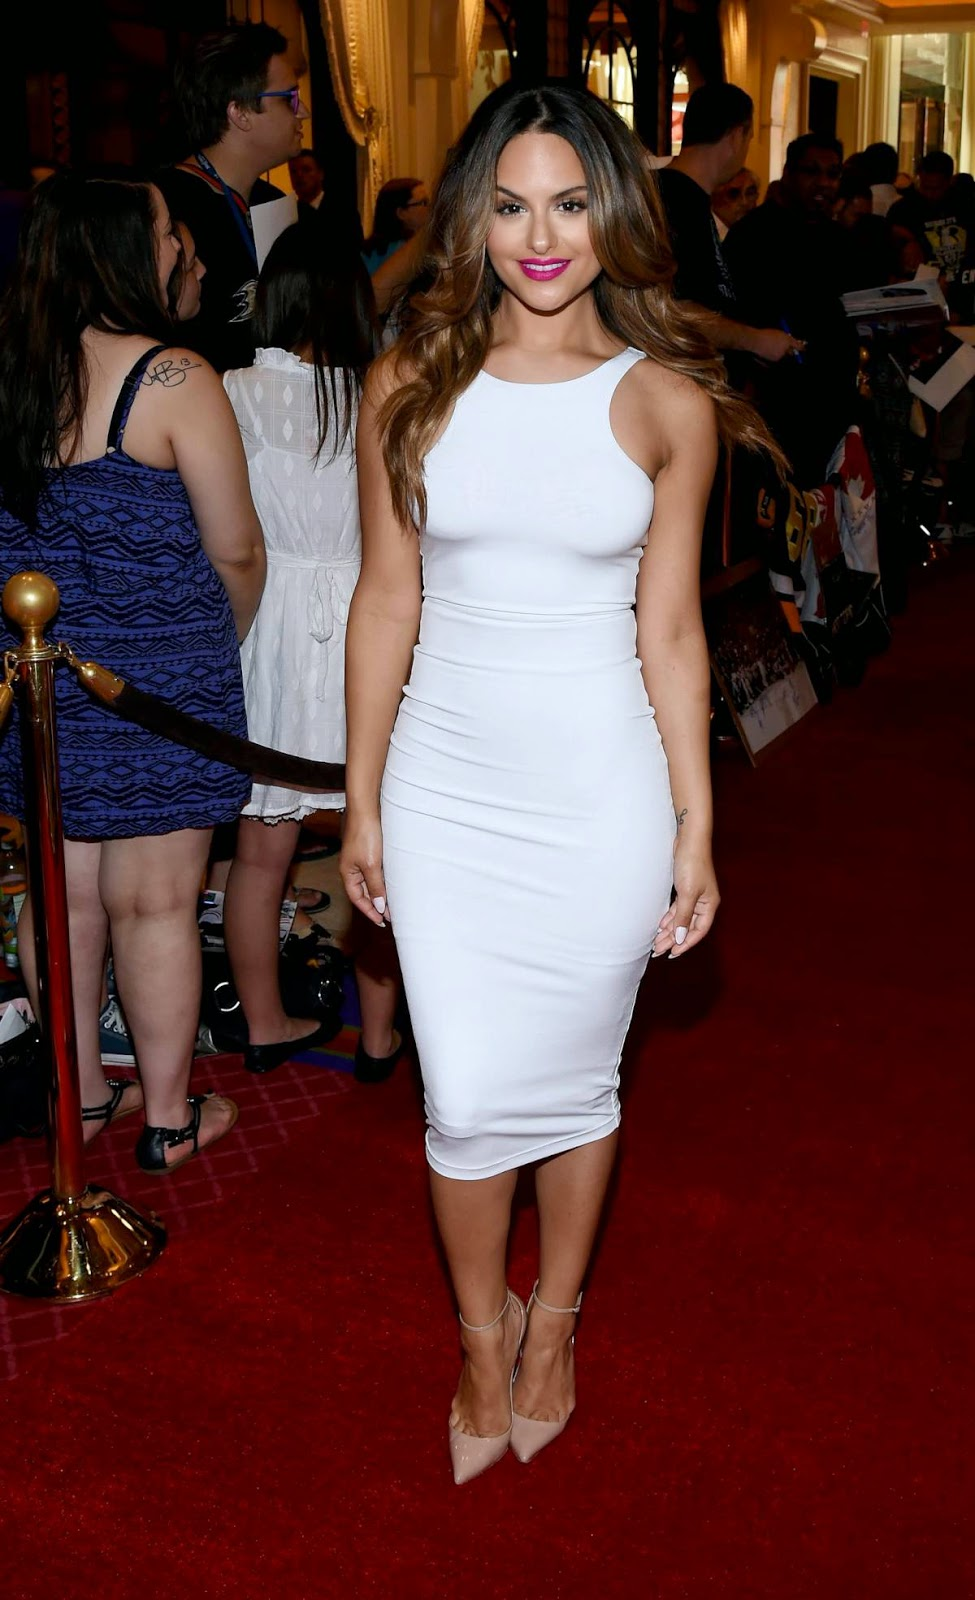 Pia Toscano Looking HOT in NHL Awards Las Vegas 2014